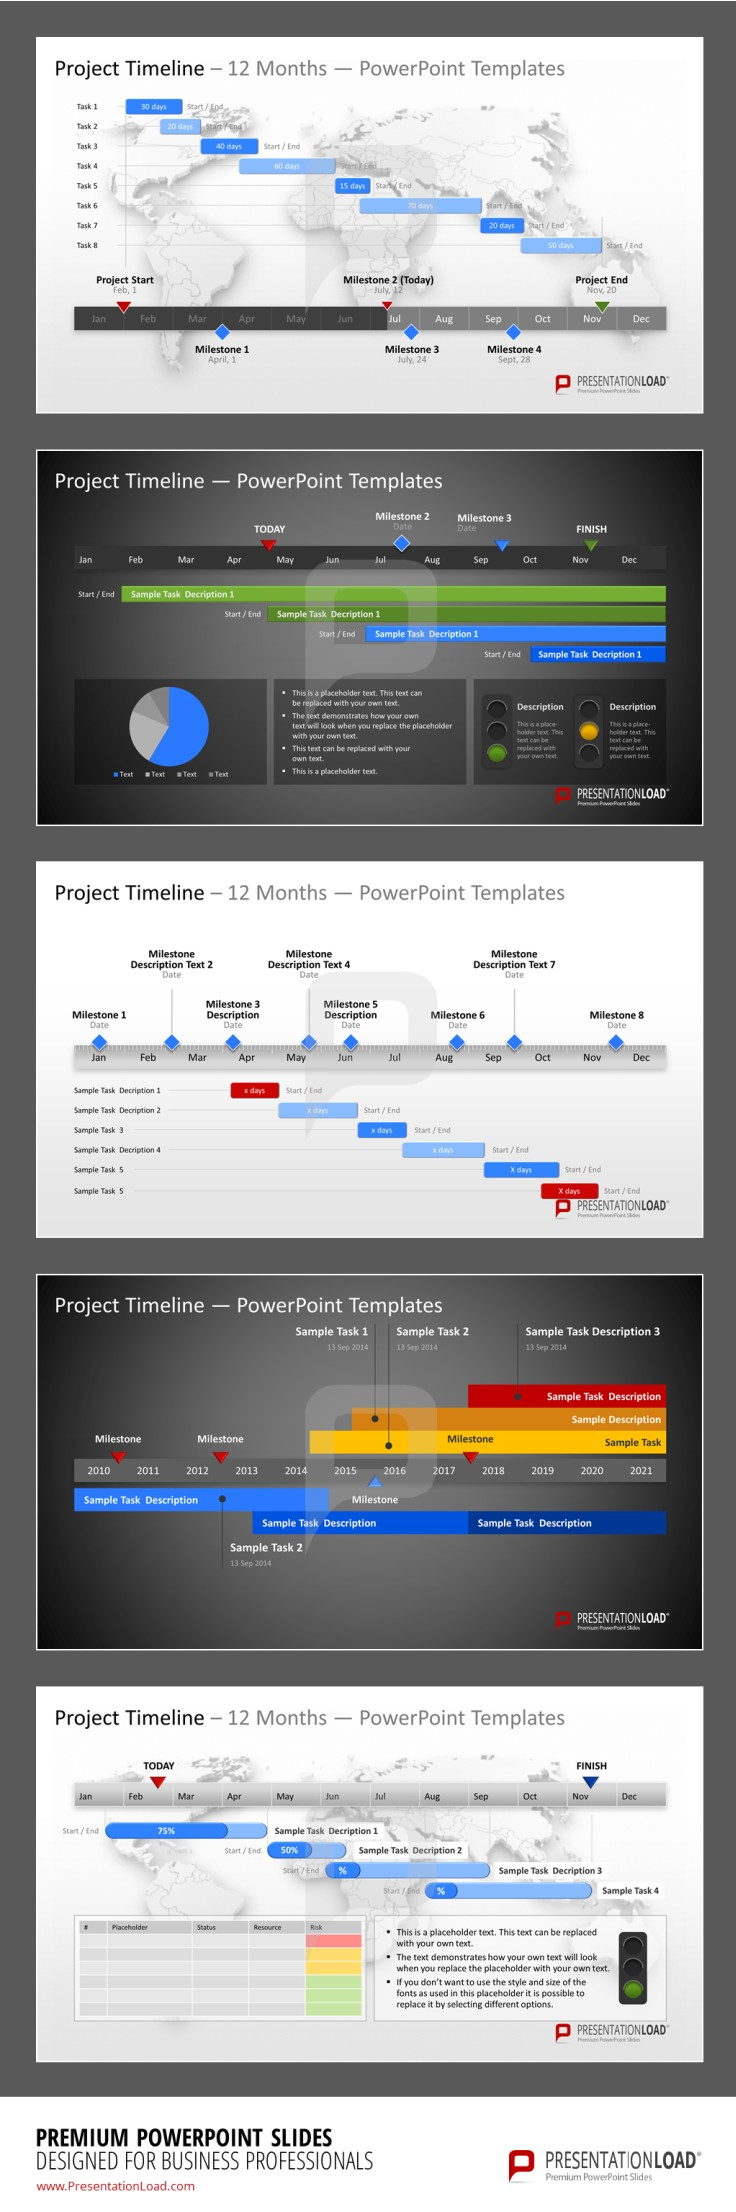 Project Timeline PowerPoint Template  presentationload www     Project Timeline PowerPoint Template  presentationload www presentationl